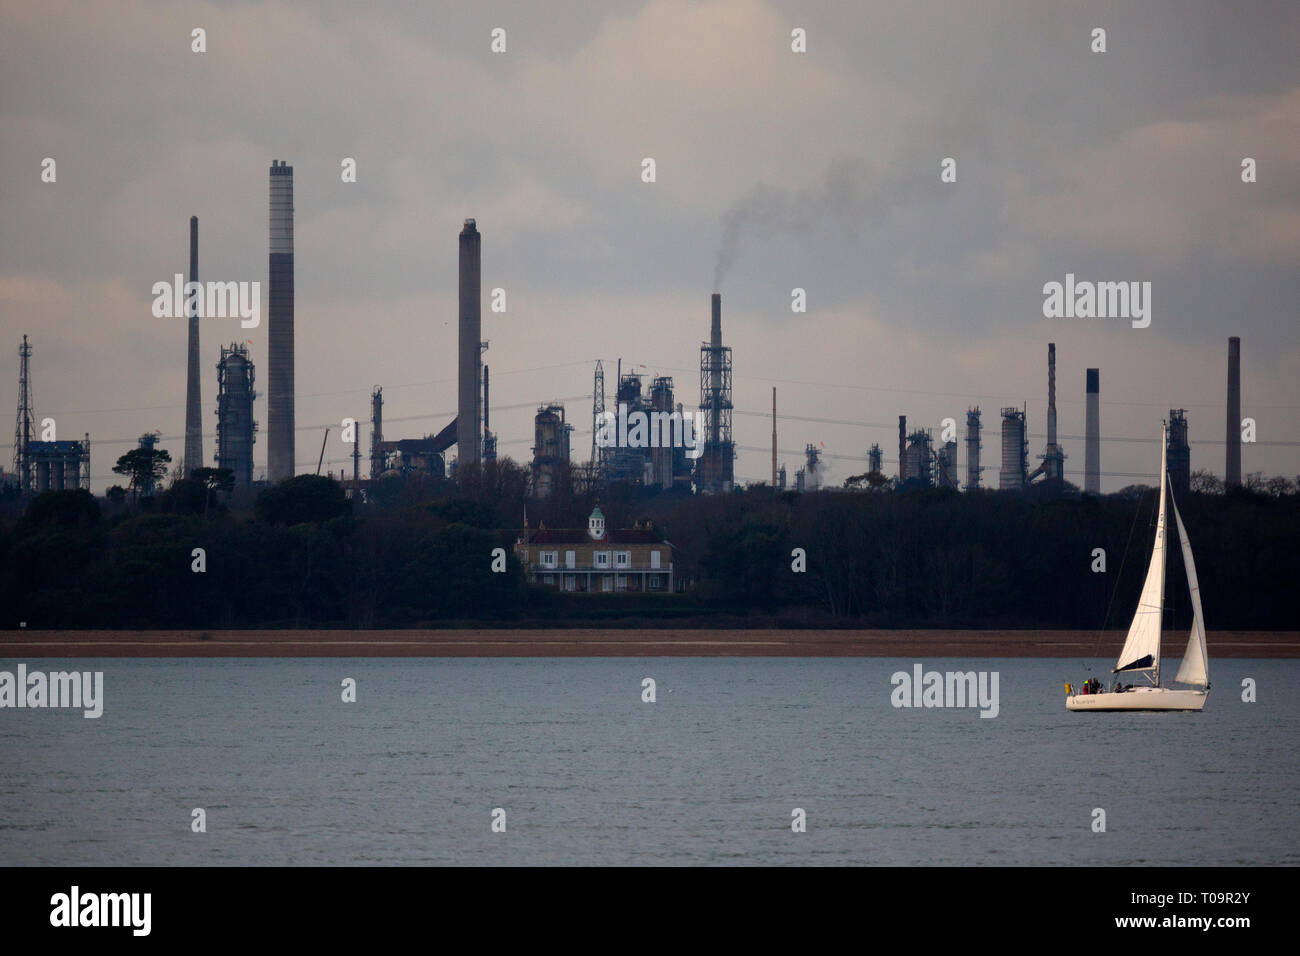 yacht,saling,in,front,of,Fawley,Oil,refinery,The Solent,Hampshire,Cowes, Isle of Wight,England,UK Stock Photo